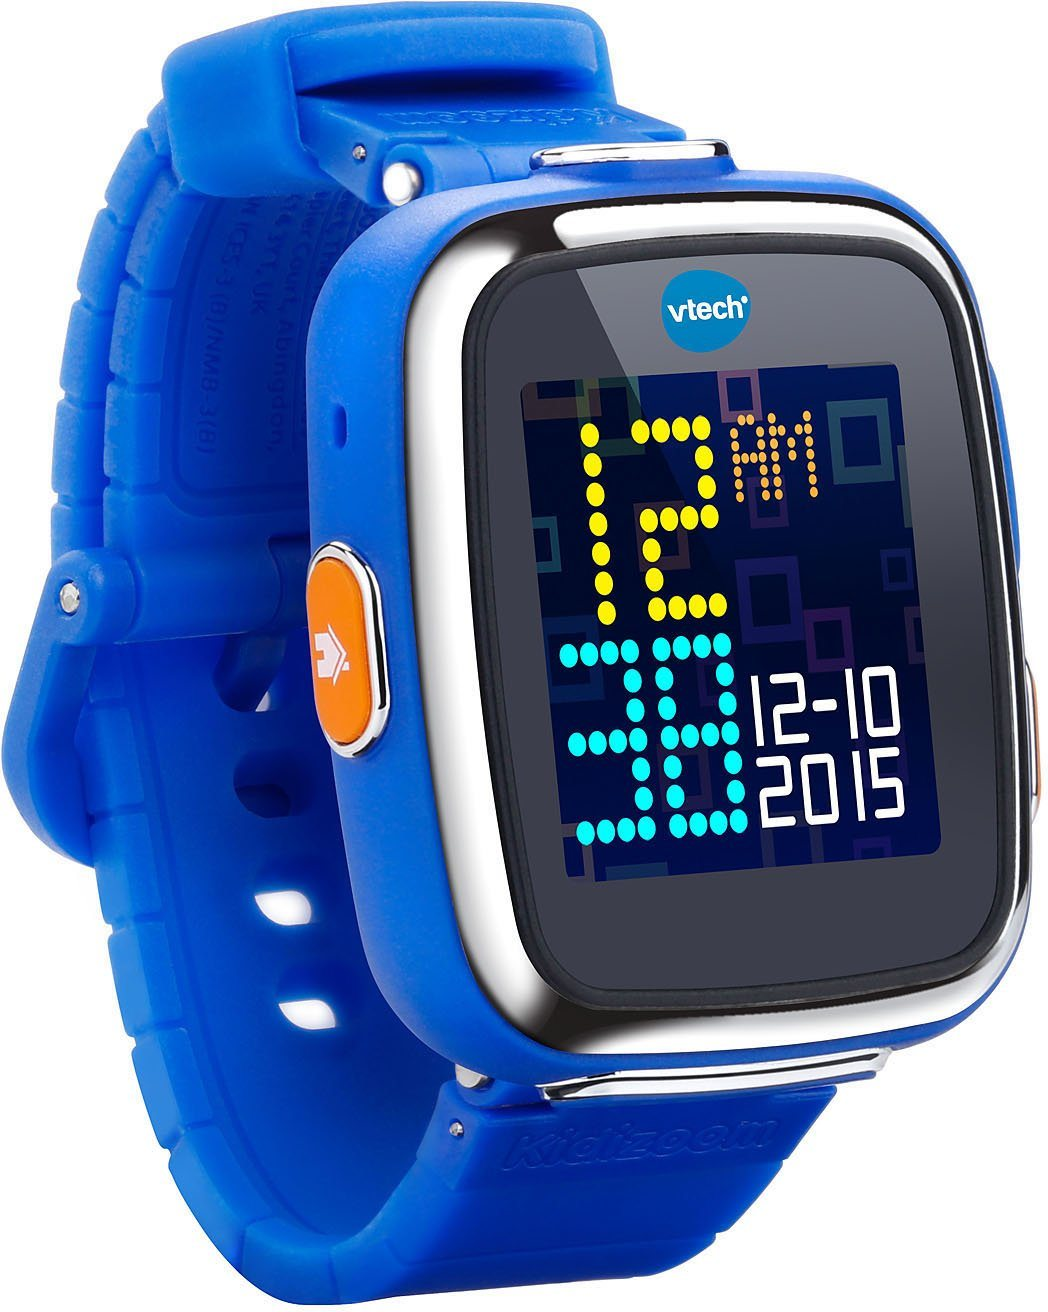 VTech chronometer in blau.